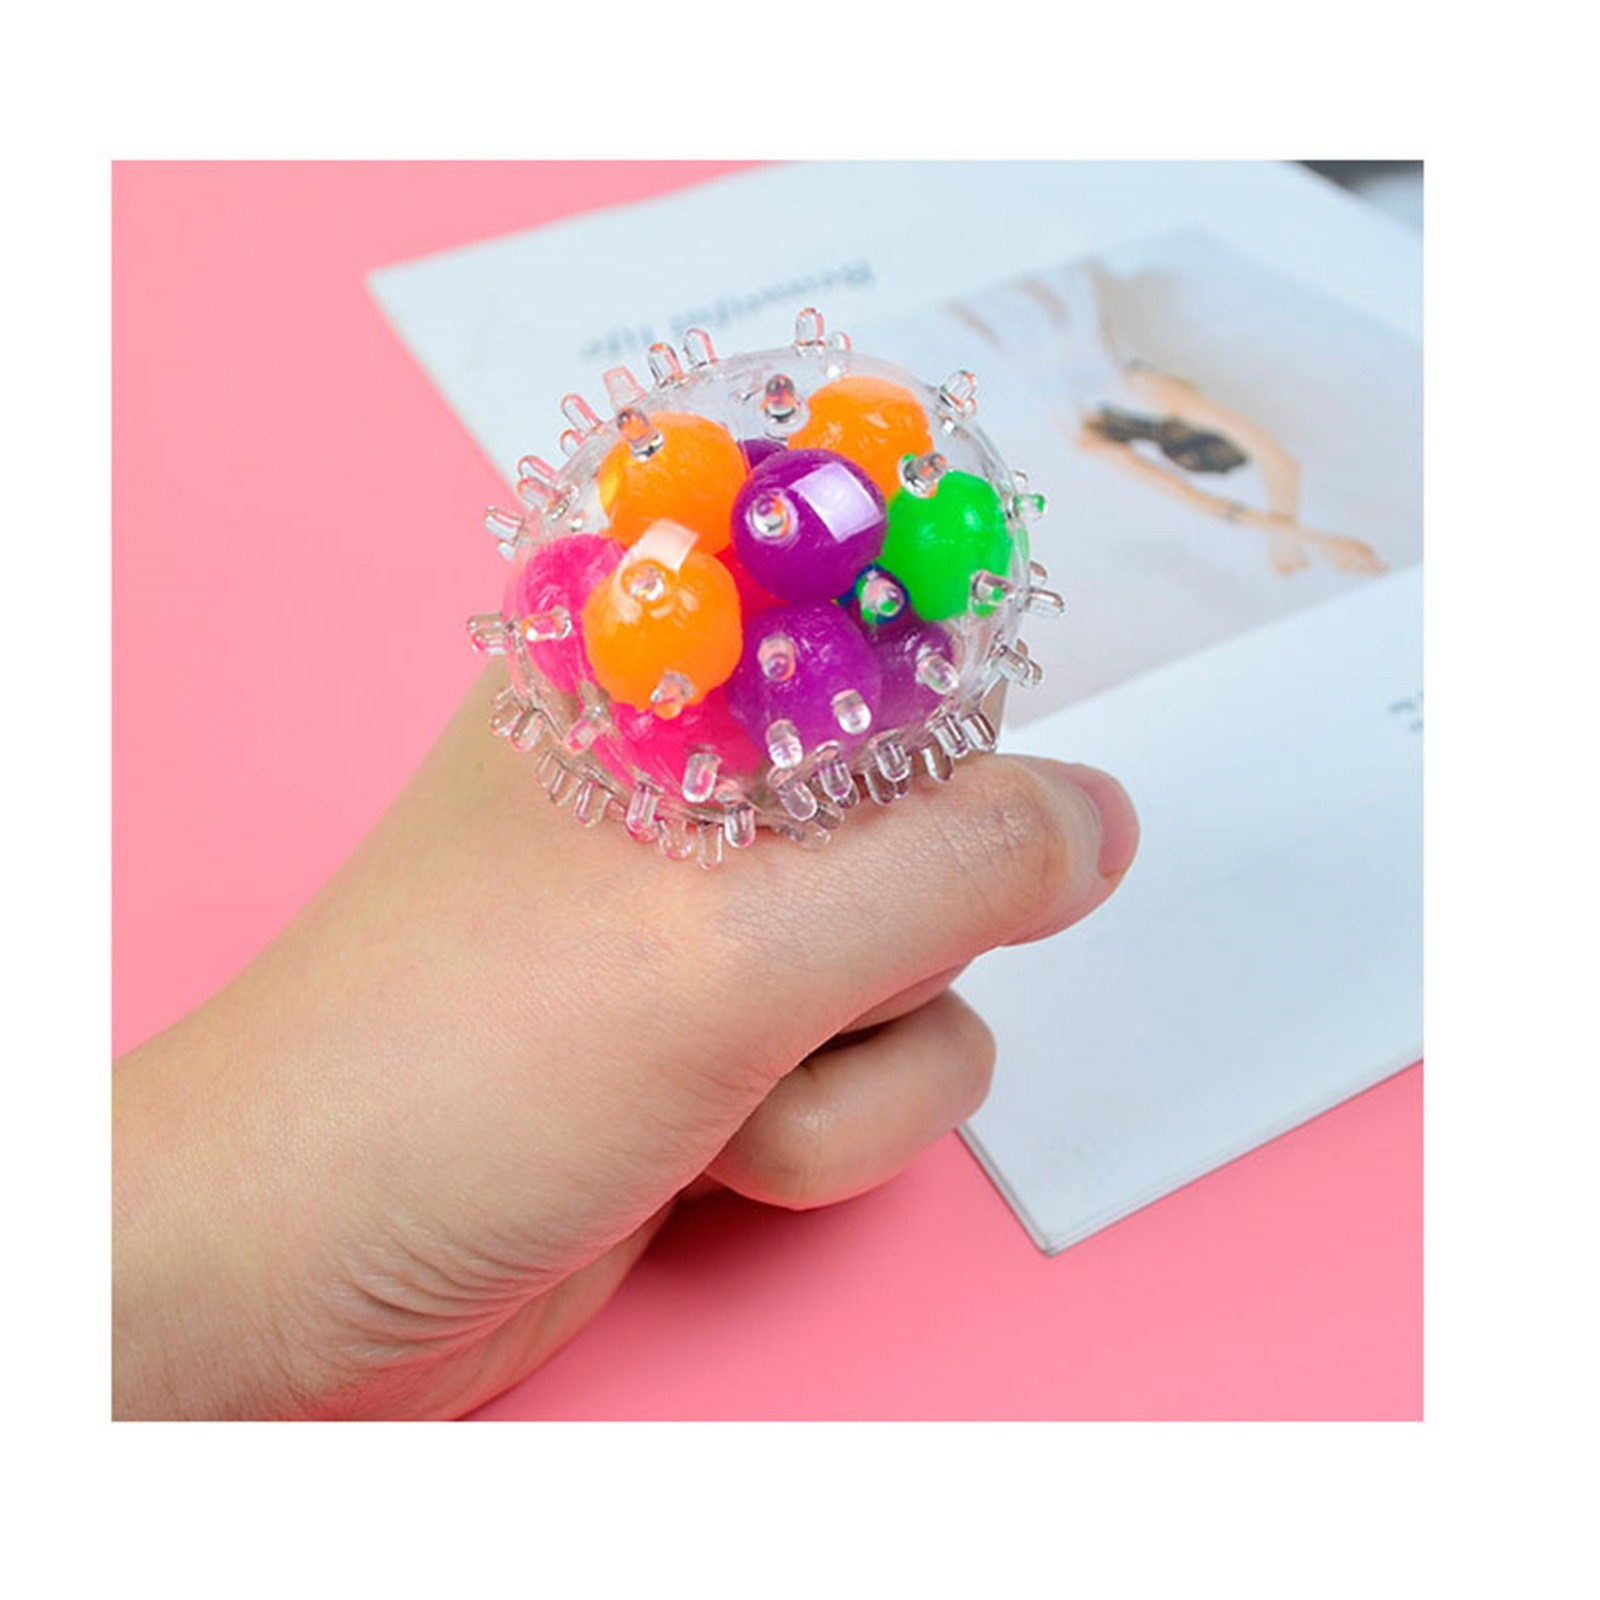 Toy Pressure-Toy Stress Adults for Kids Funny 10PCS Rainbow-Ball Spongy Squeezable Colorful img3